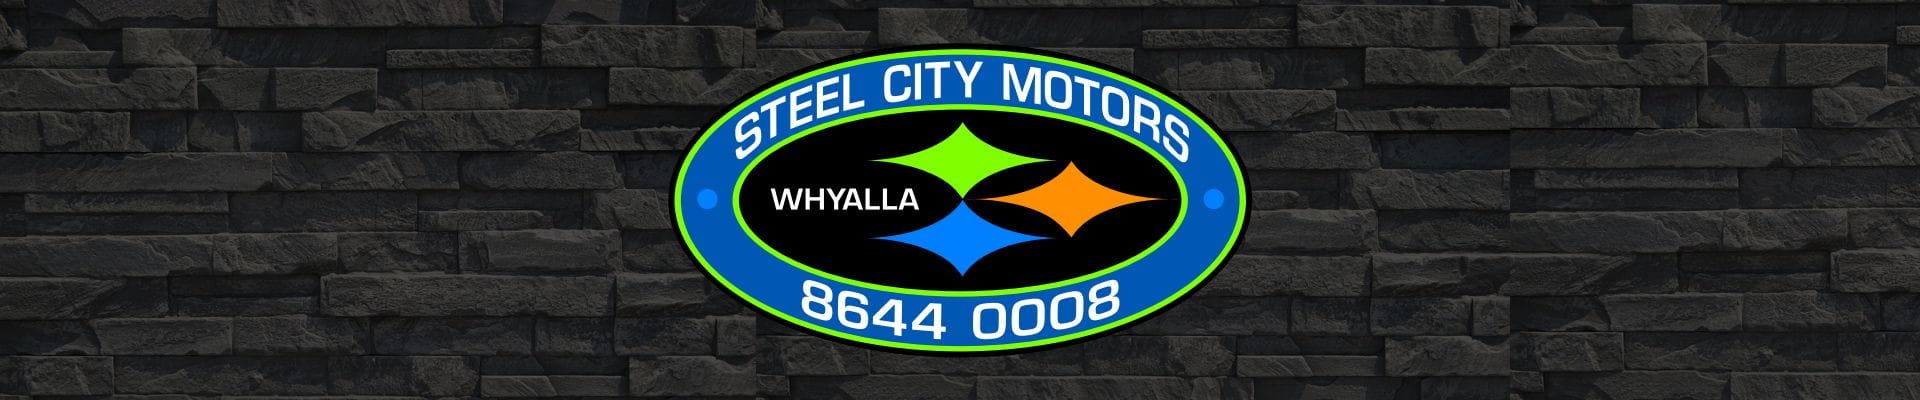 steel city motors